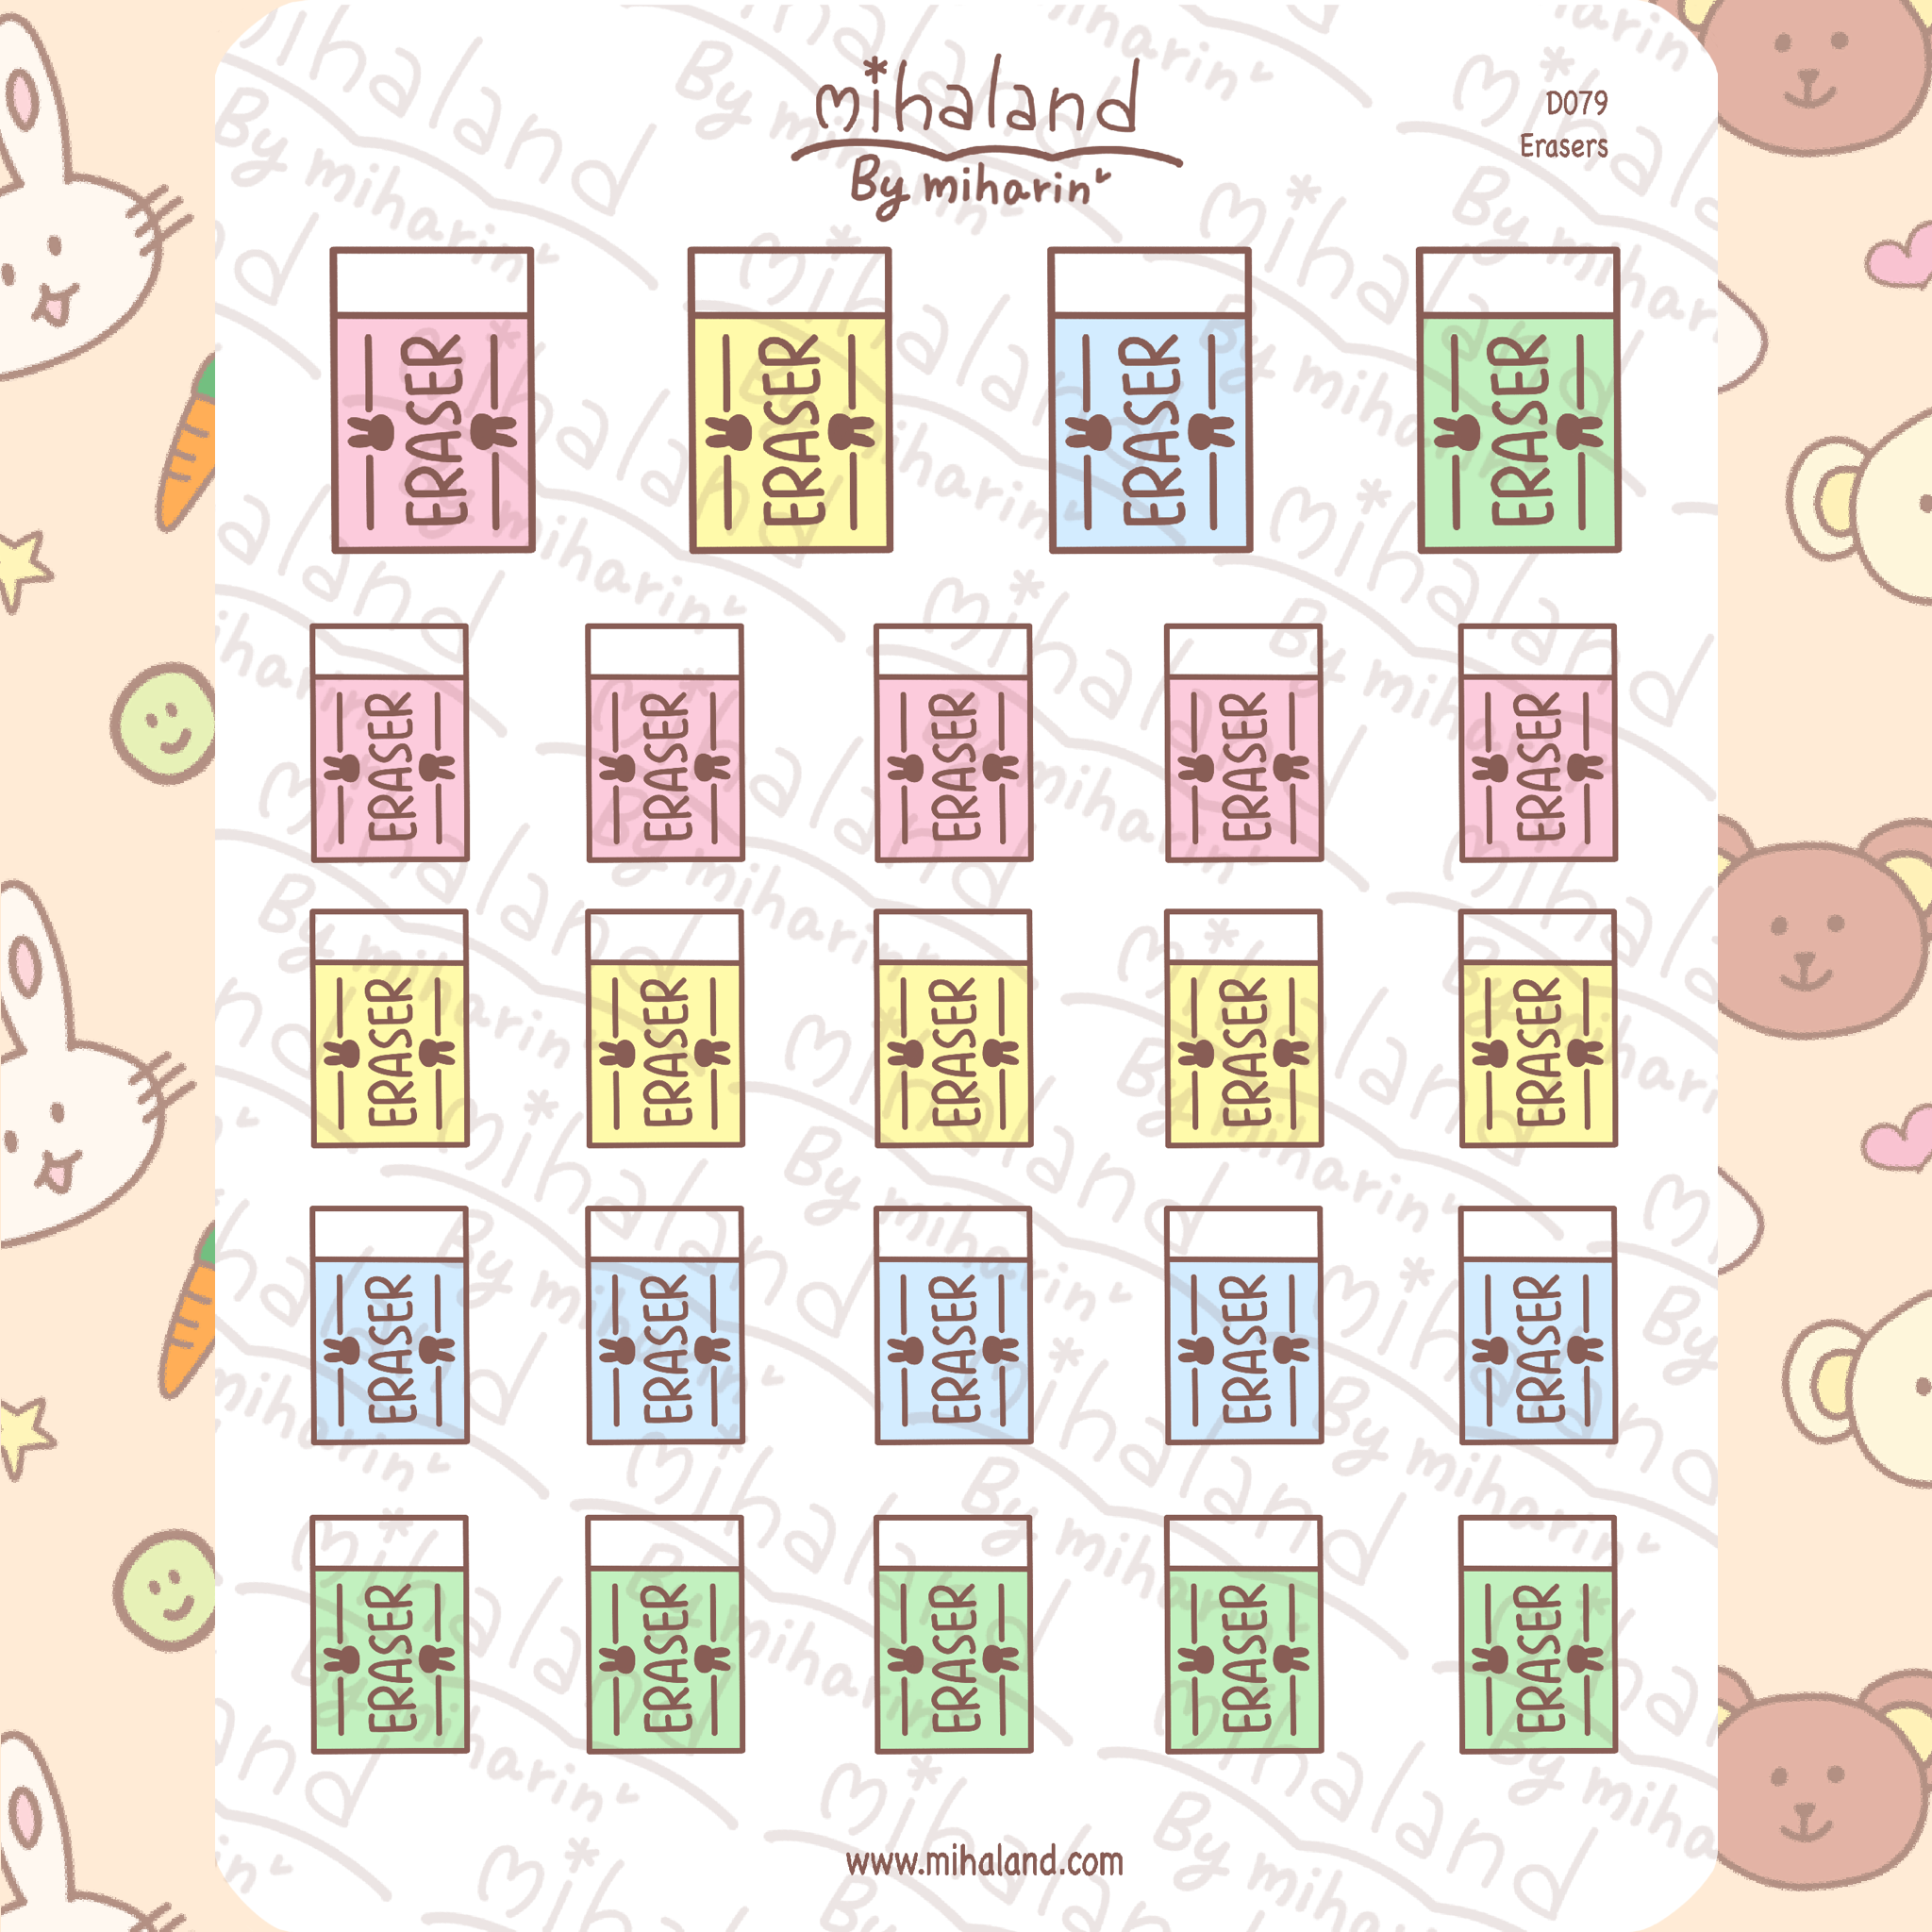 mihaland - Erasers Planner Stickers (D079)